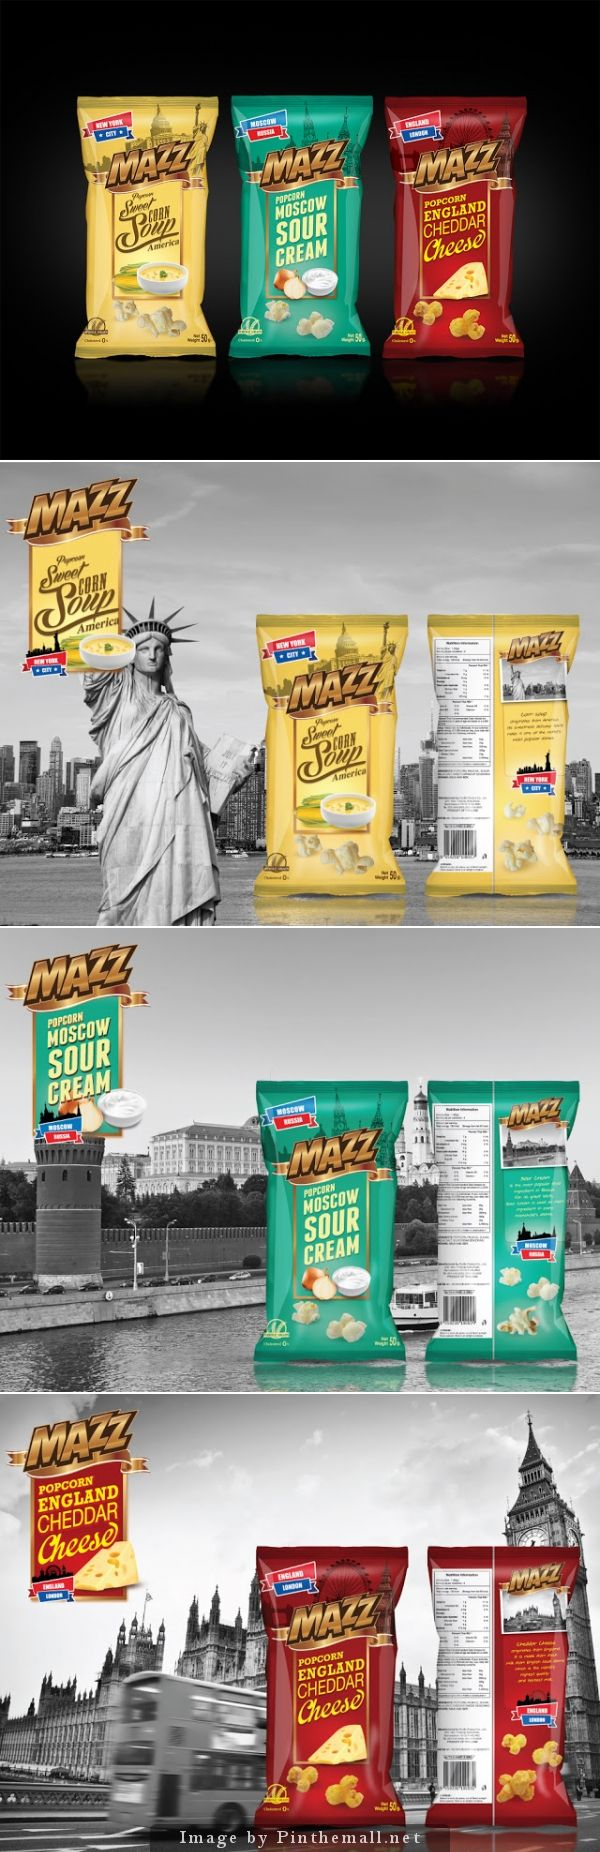 Mazz Popcorn branding products packaging design. Around the world through snacks PD